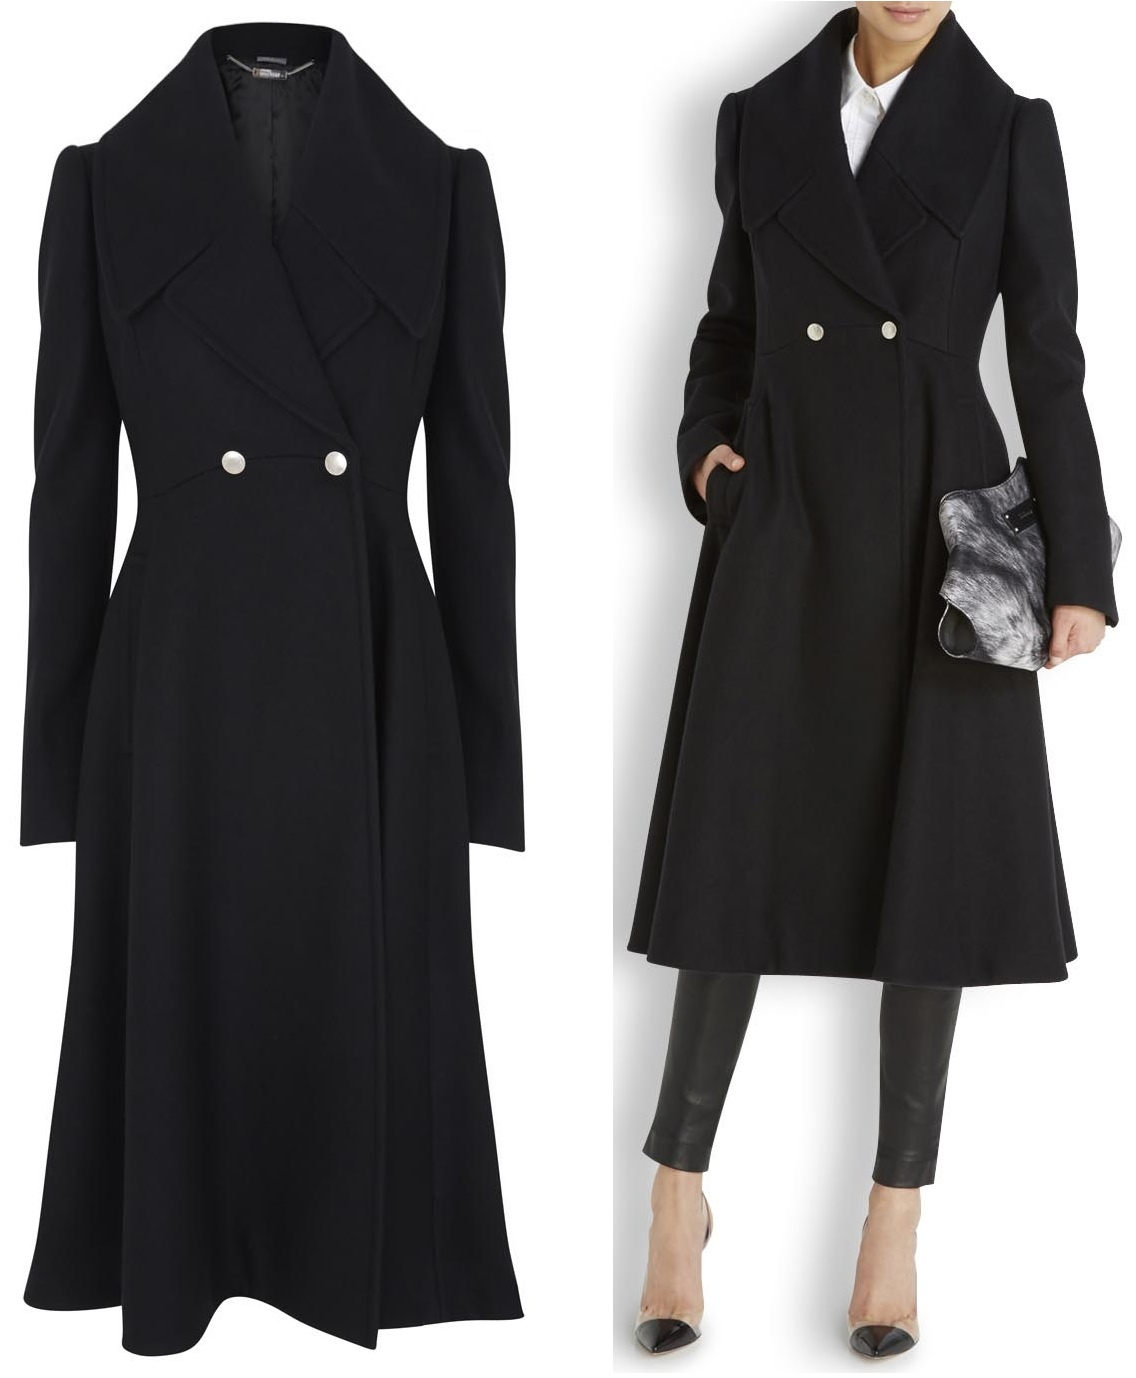 Fit & Flare Wool Coat: Allover seaming combines with your favorite fit & flare silhouette to create a gorgeous shape. 3/4-length coat has a shawl collar and on-seam pockets (sewn closed like all finely tailored garments).